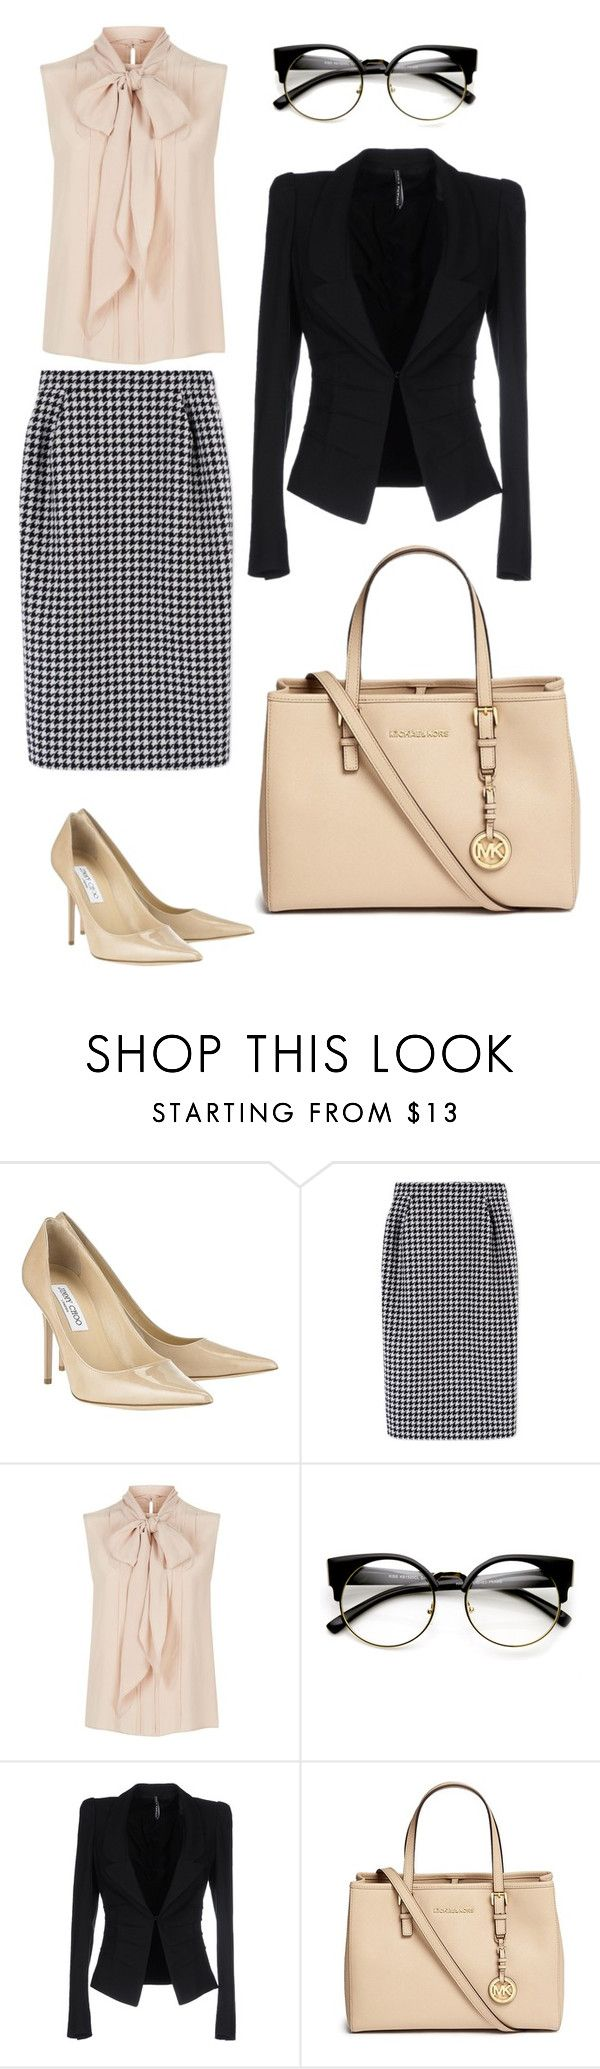 """Look 3- WILSONS"" by kirravanblanken on Polyvore featuring Jimmy Choo, MaxMara, ZeroUV, Liviana Conti and Michael Kors"